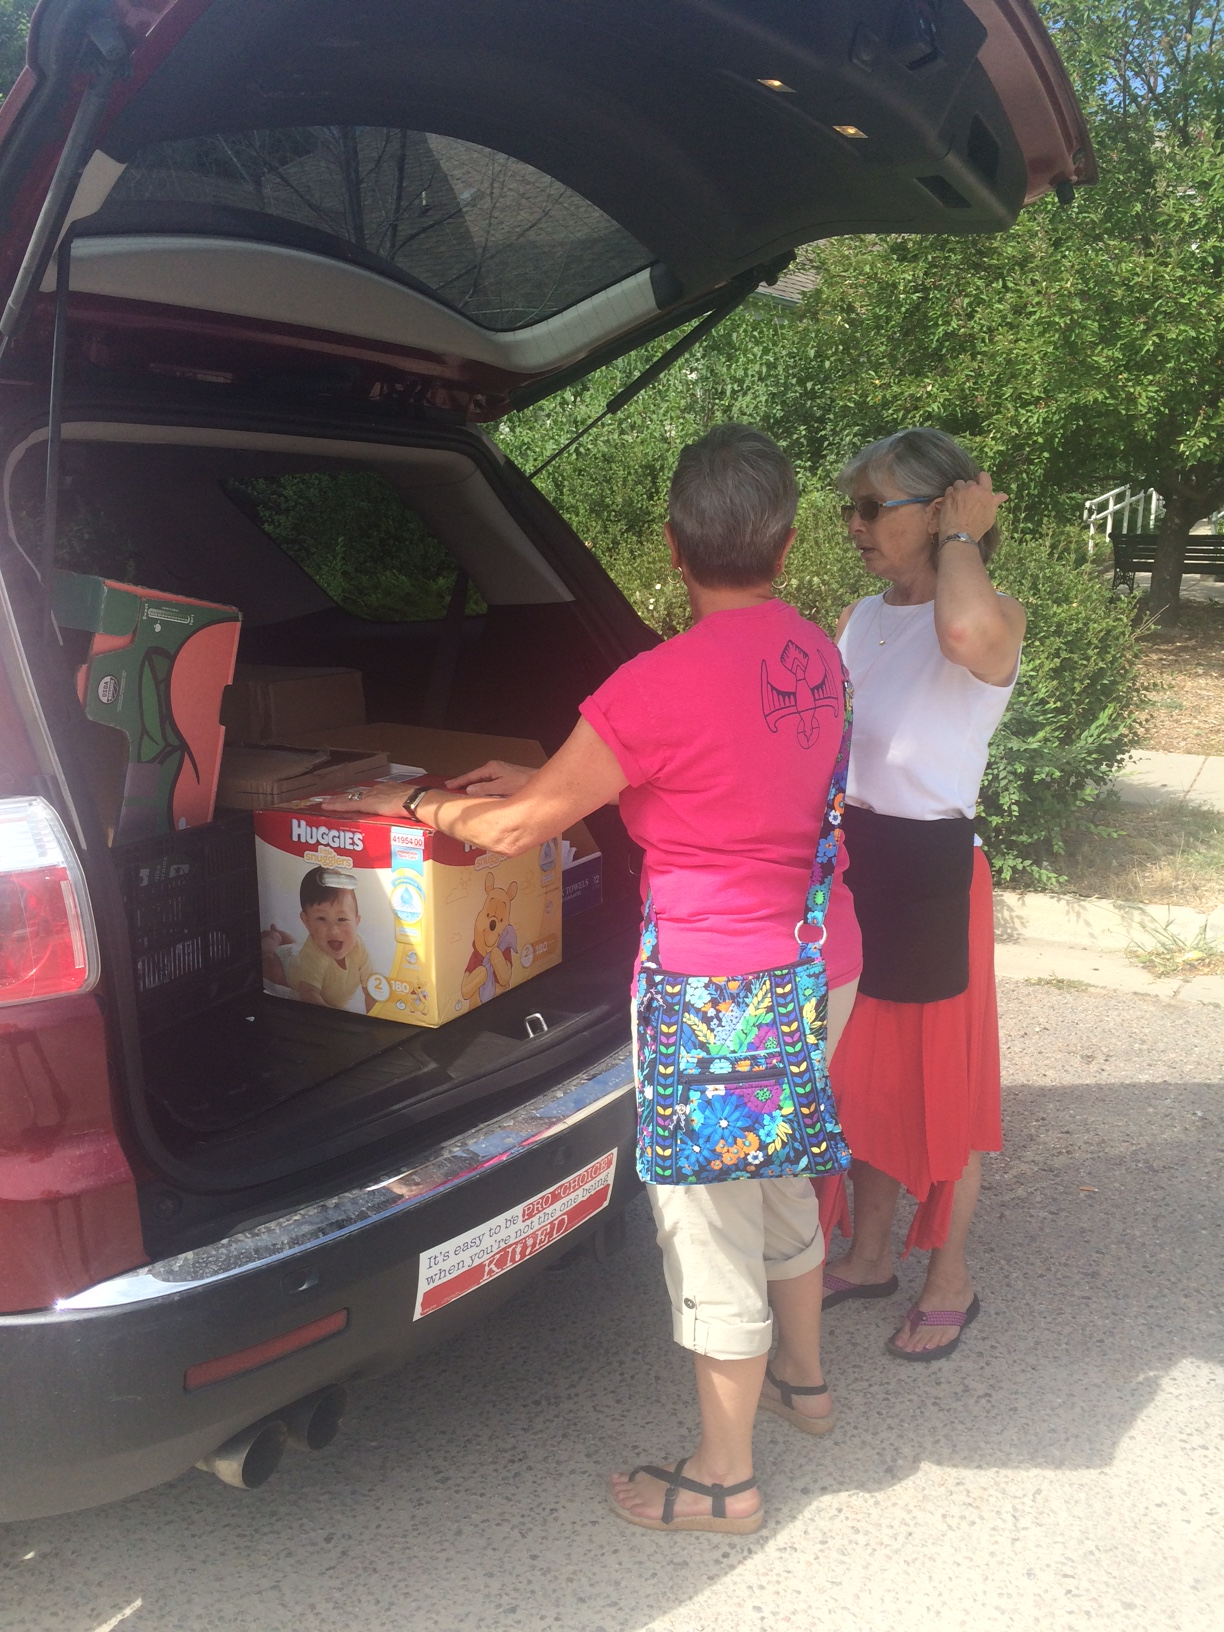 One of our wonderful volunteers, who prefers to remain anonymous, helps staff member Nancy Ott carry in a carload of household goods.